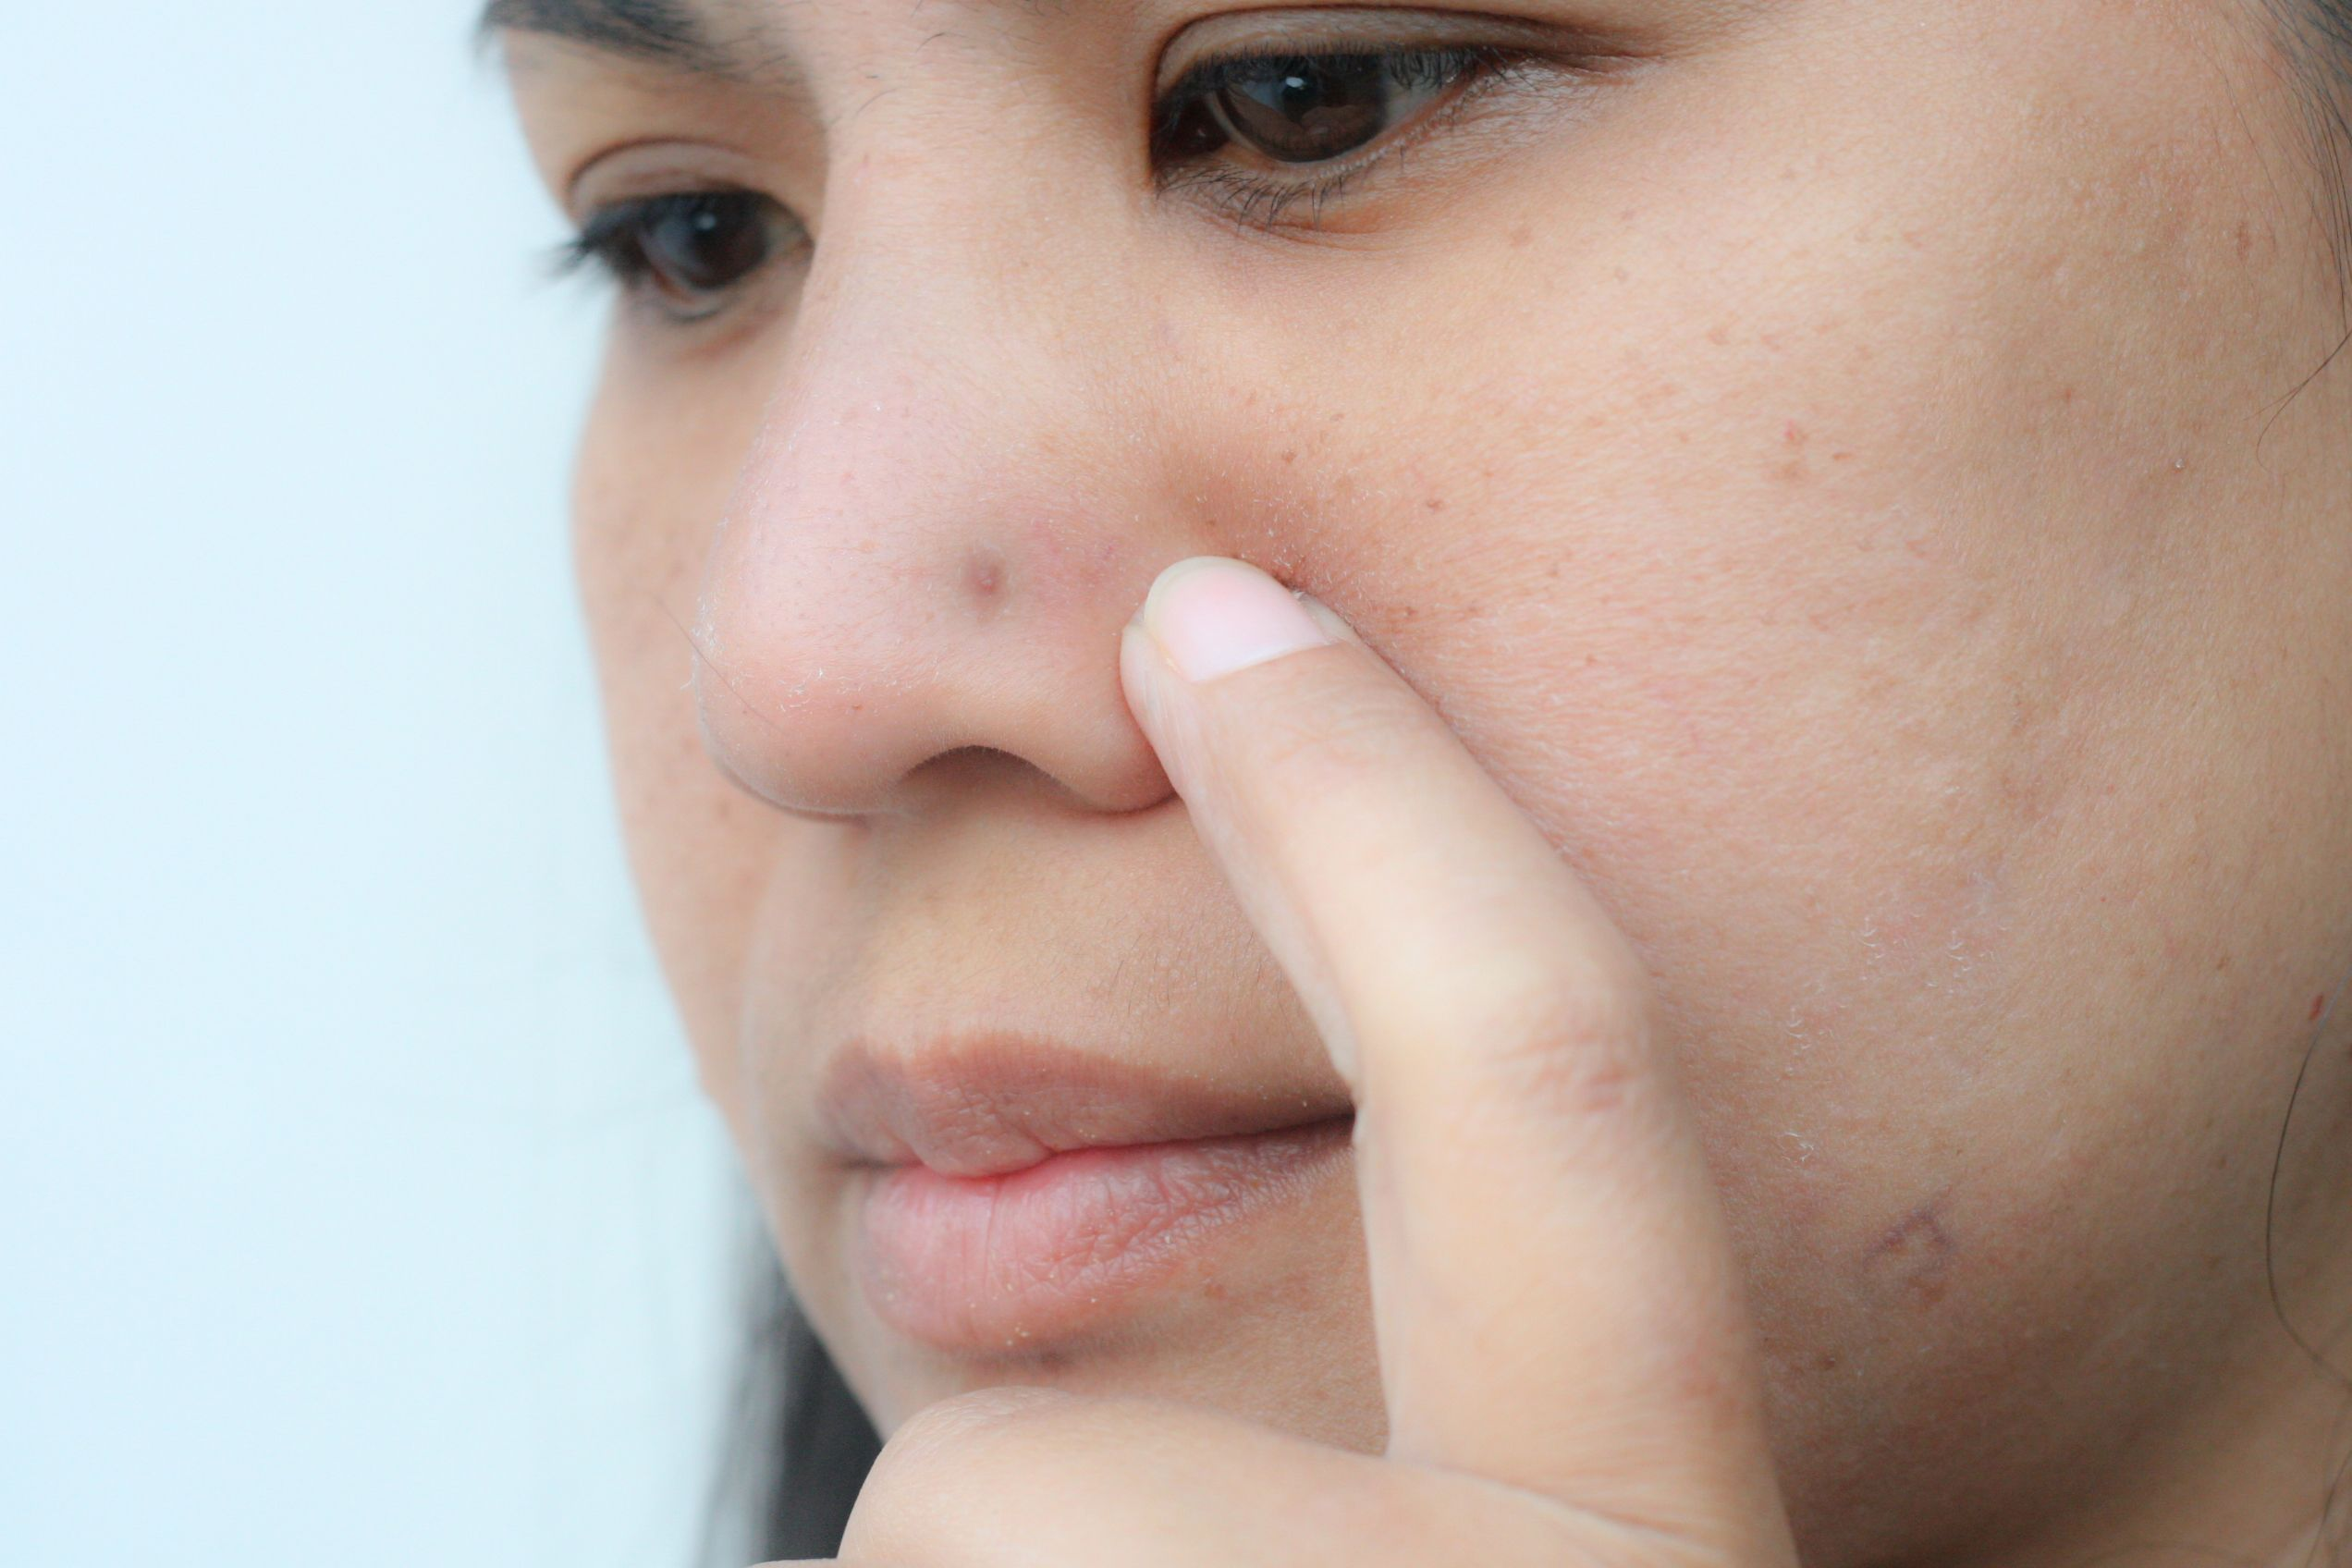 Care for Your Nose Piercing | Piercing, Piercings and ...